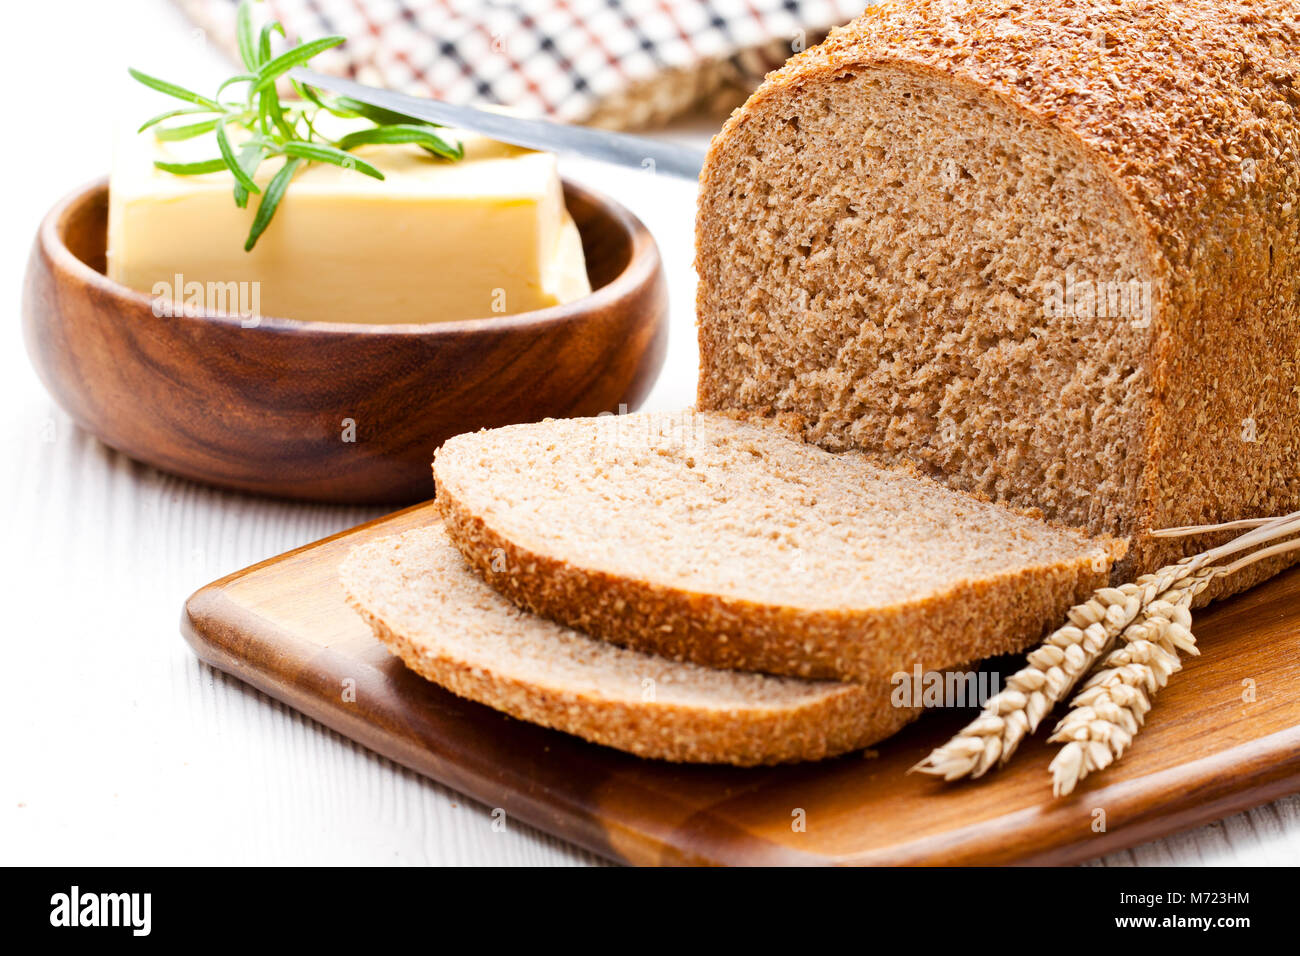 Sliced  slow-baked organic wholemeal bread with butter and rosemary and wheat ears - Stock Image